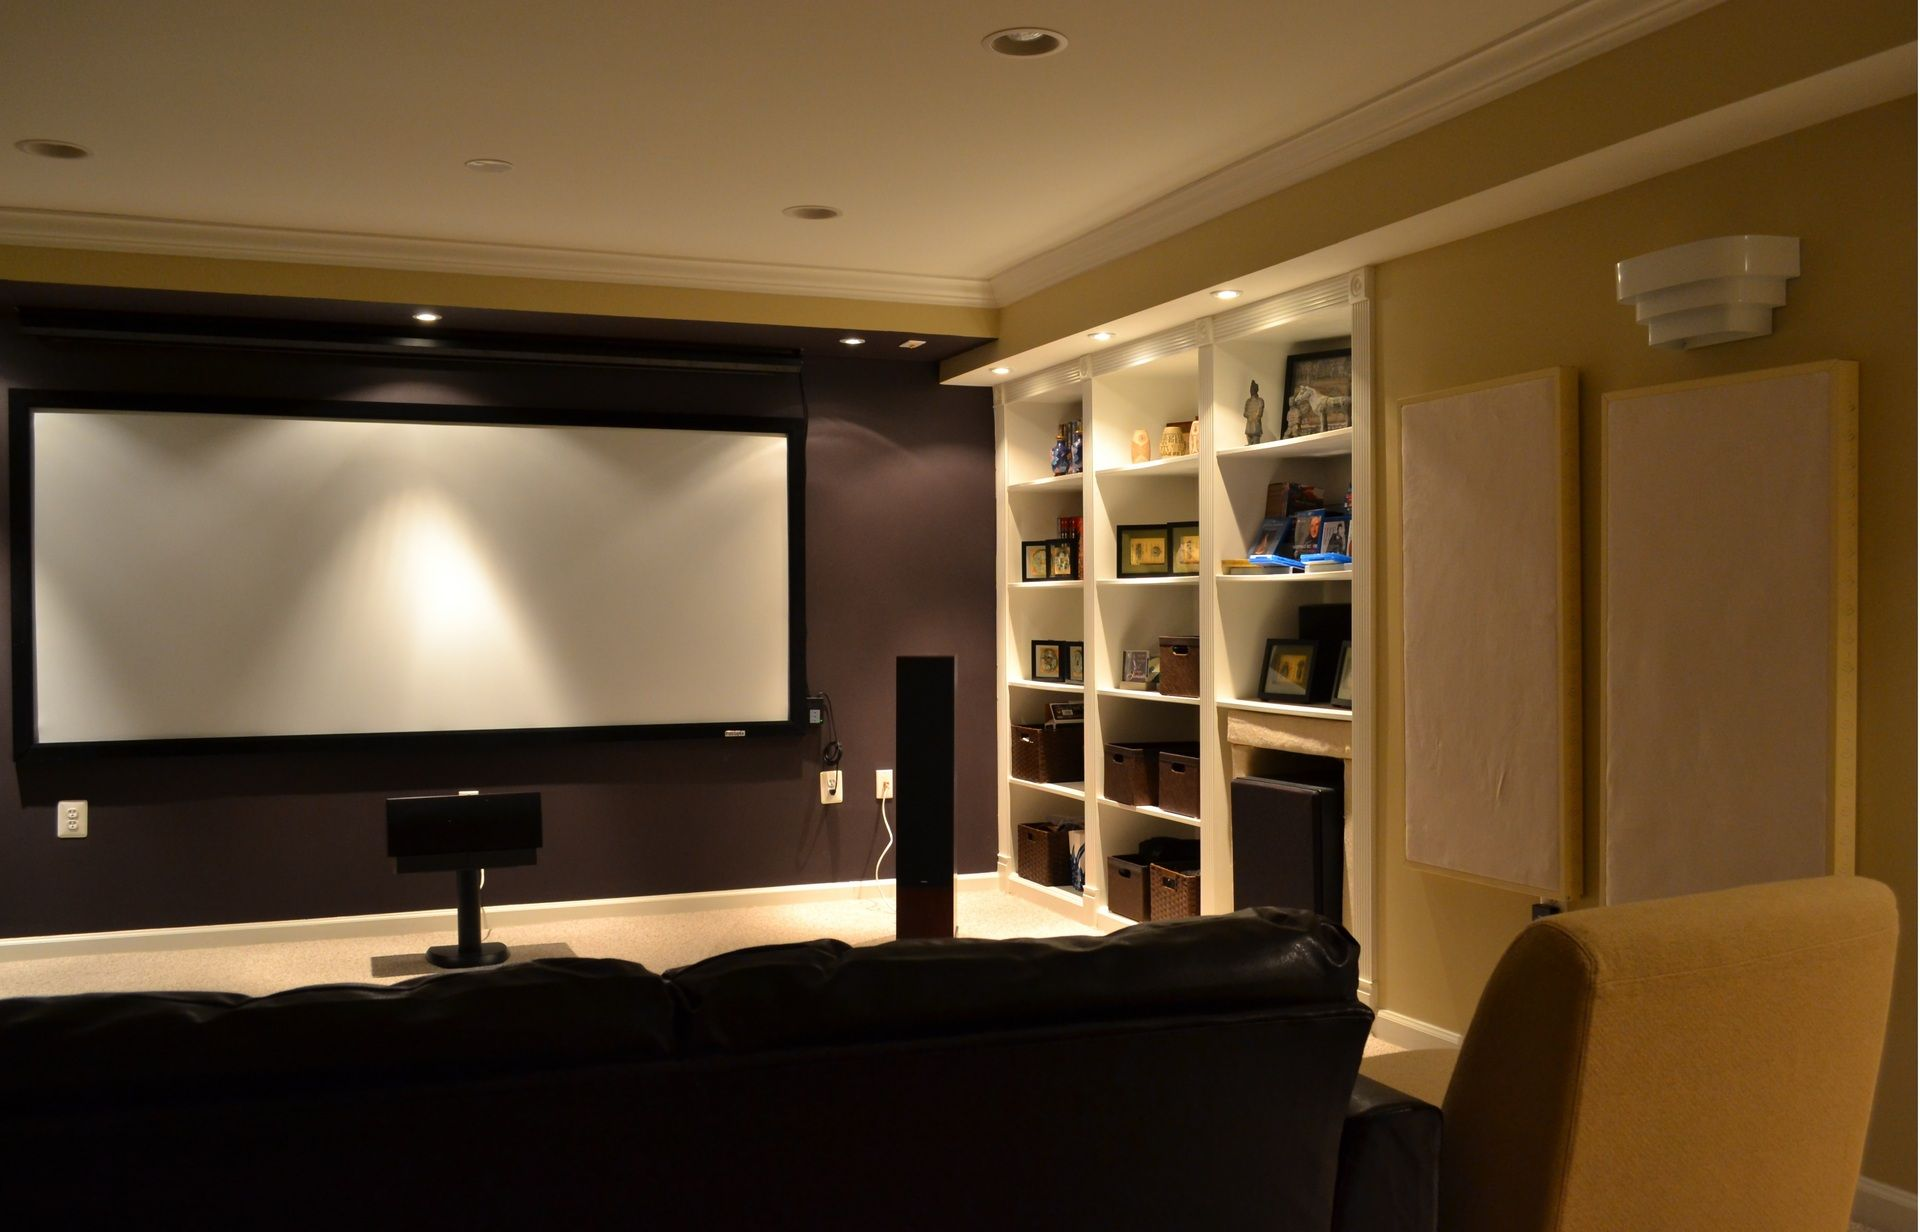 Jjmbxkb 39 s home theater gallery my home theater hangout for Home theater setup ideas